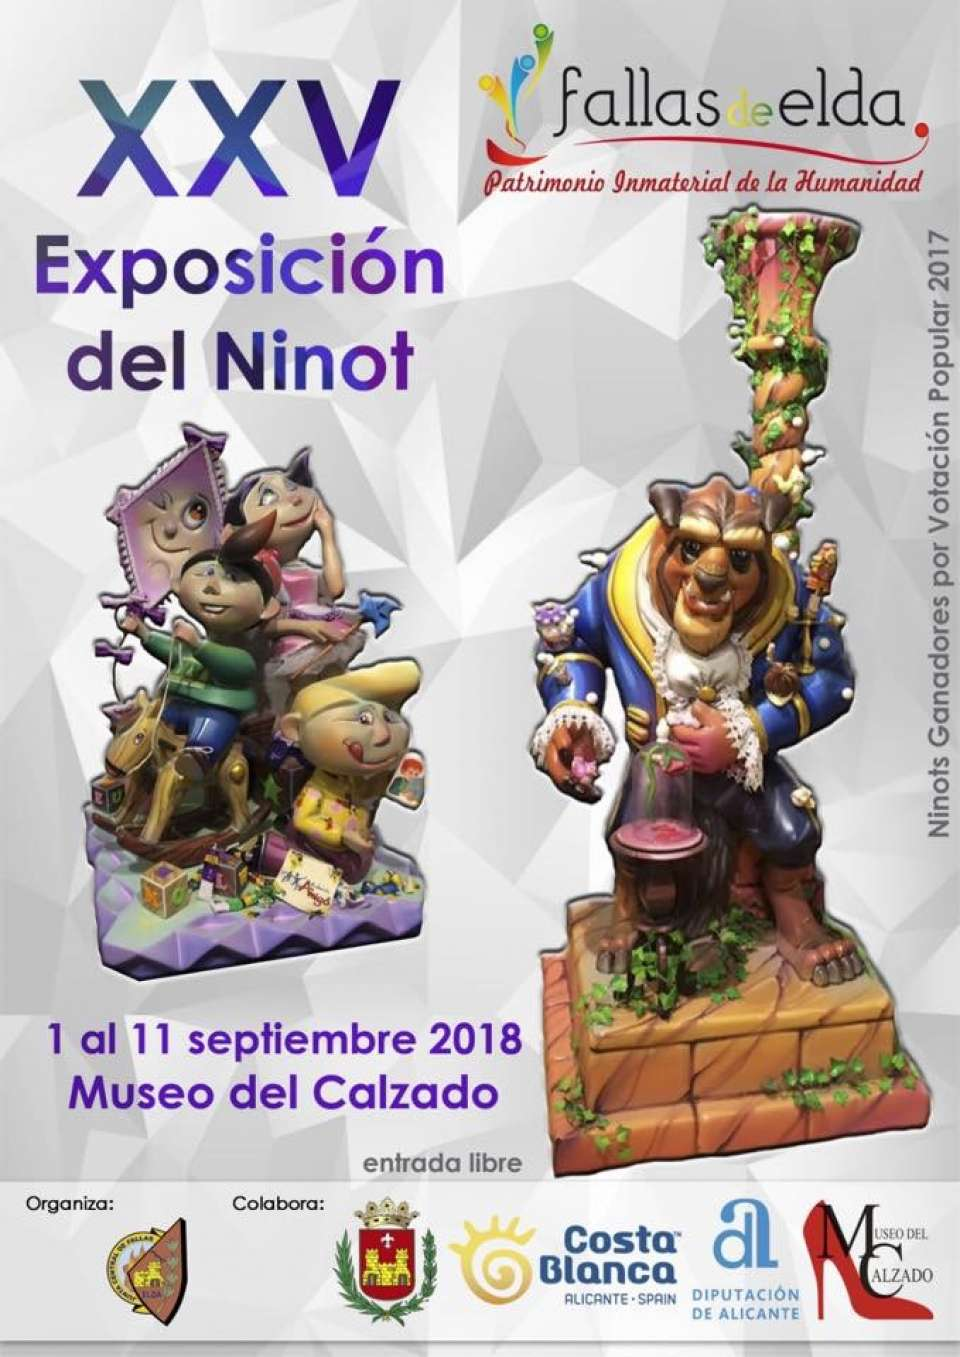 Exhibition of the Ninot and a Procession of the Fallas of Elda 2018